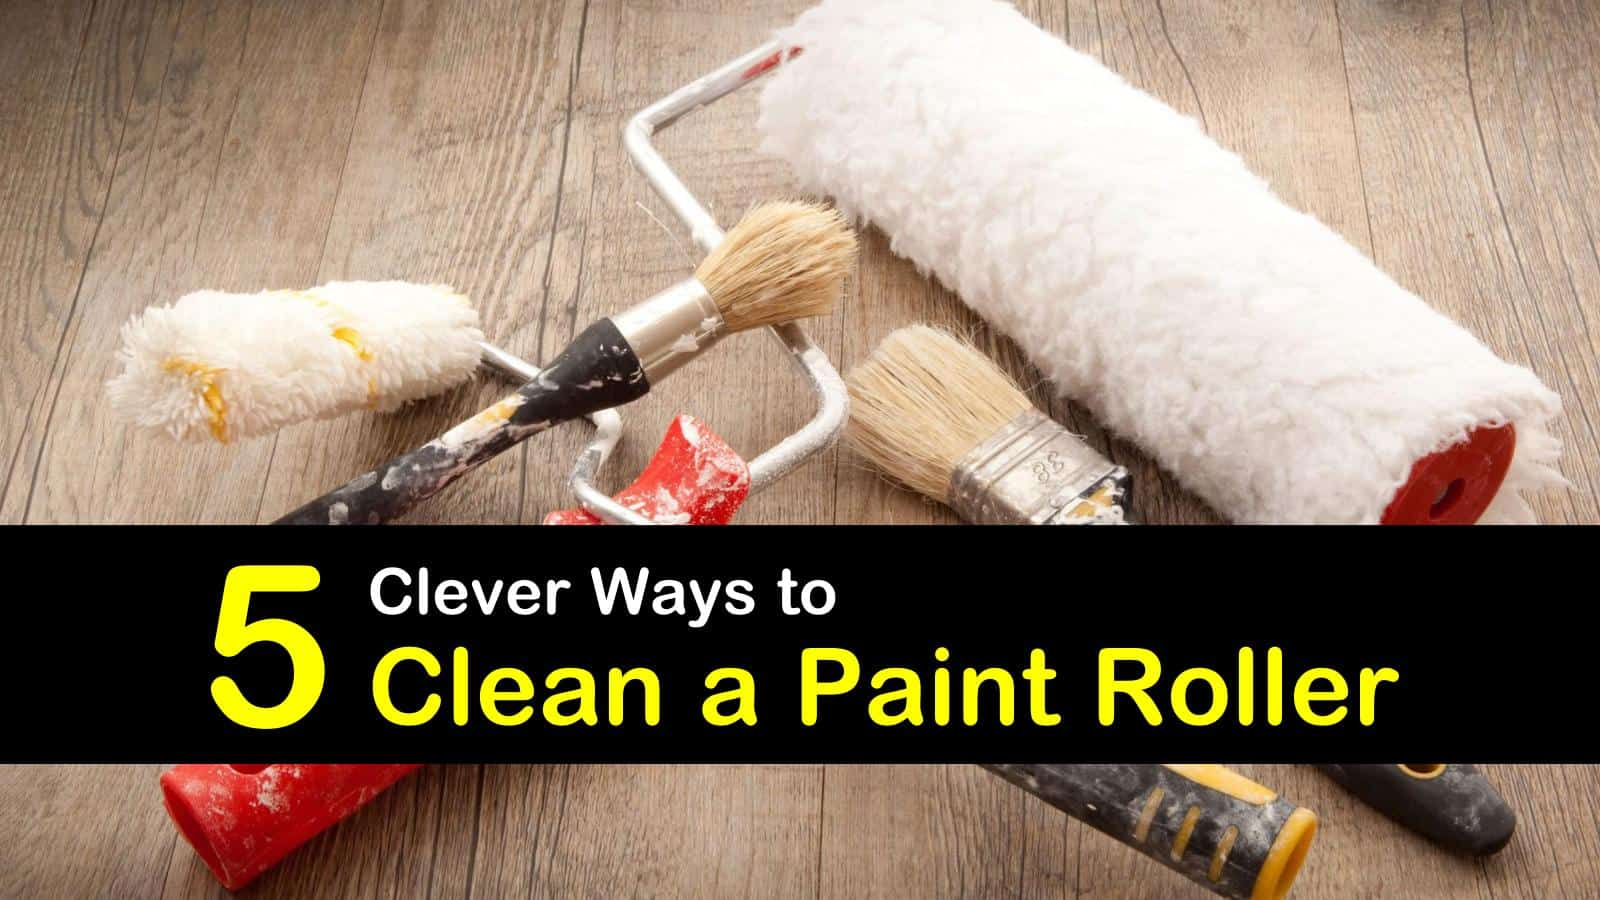 how to clean a paint roller titleimg1